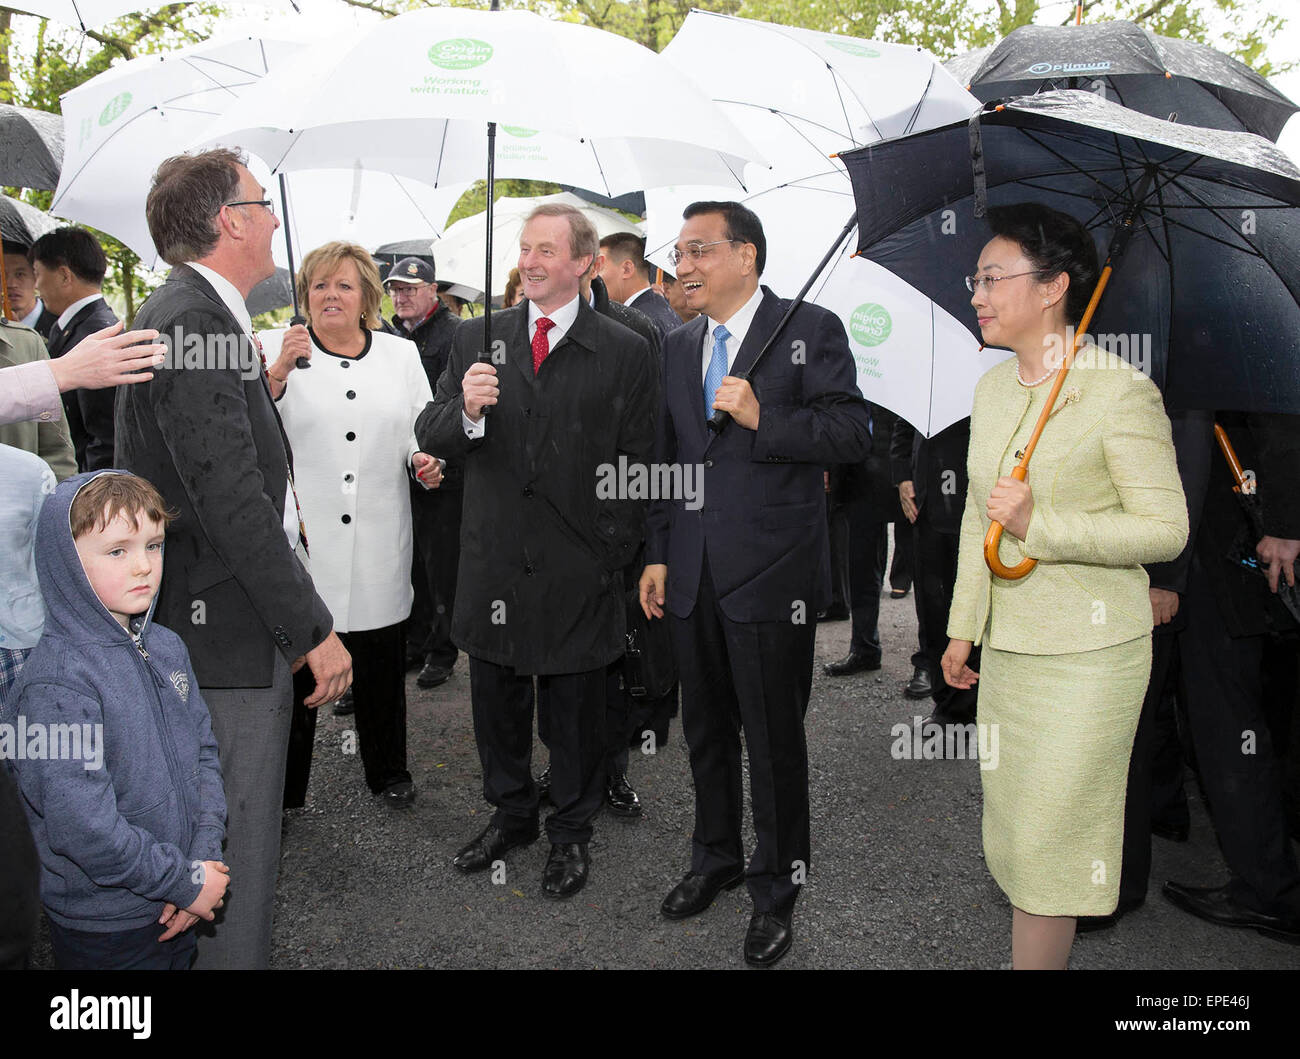 Shannon, Ireland. 17th May, 2015. Chinese Premier Li Keqiang (2nd R) and his wife, Prof. Cheng Hong (1st R), in - Stock Image